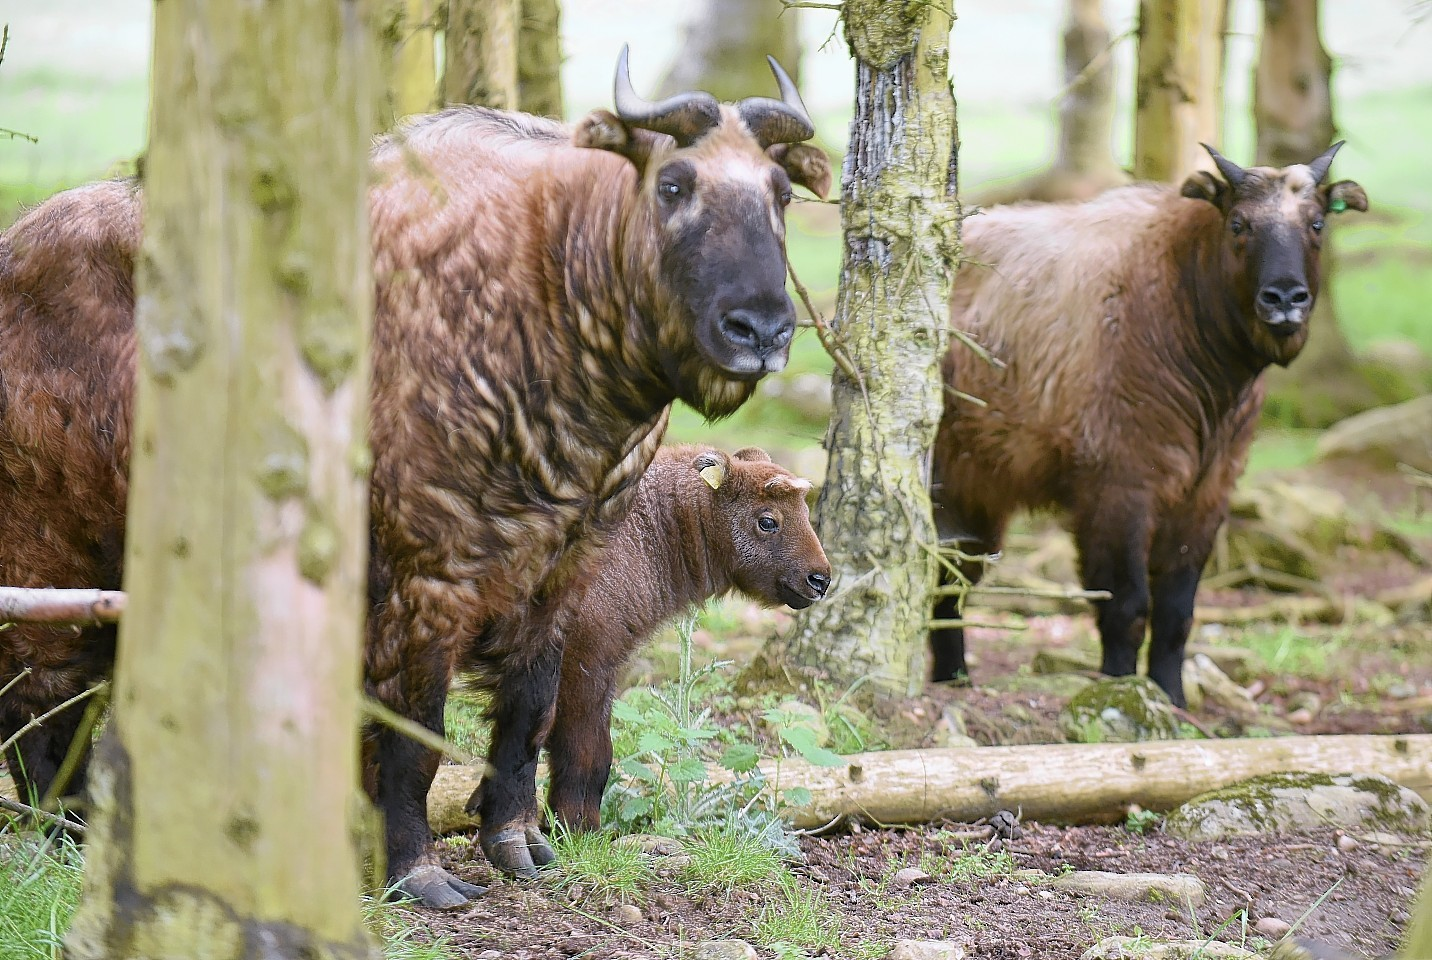 The new Mishmi Takin calf photographed with other members of its family at the Highland Wildlife Park, Kincraig